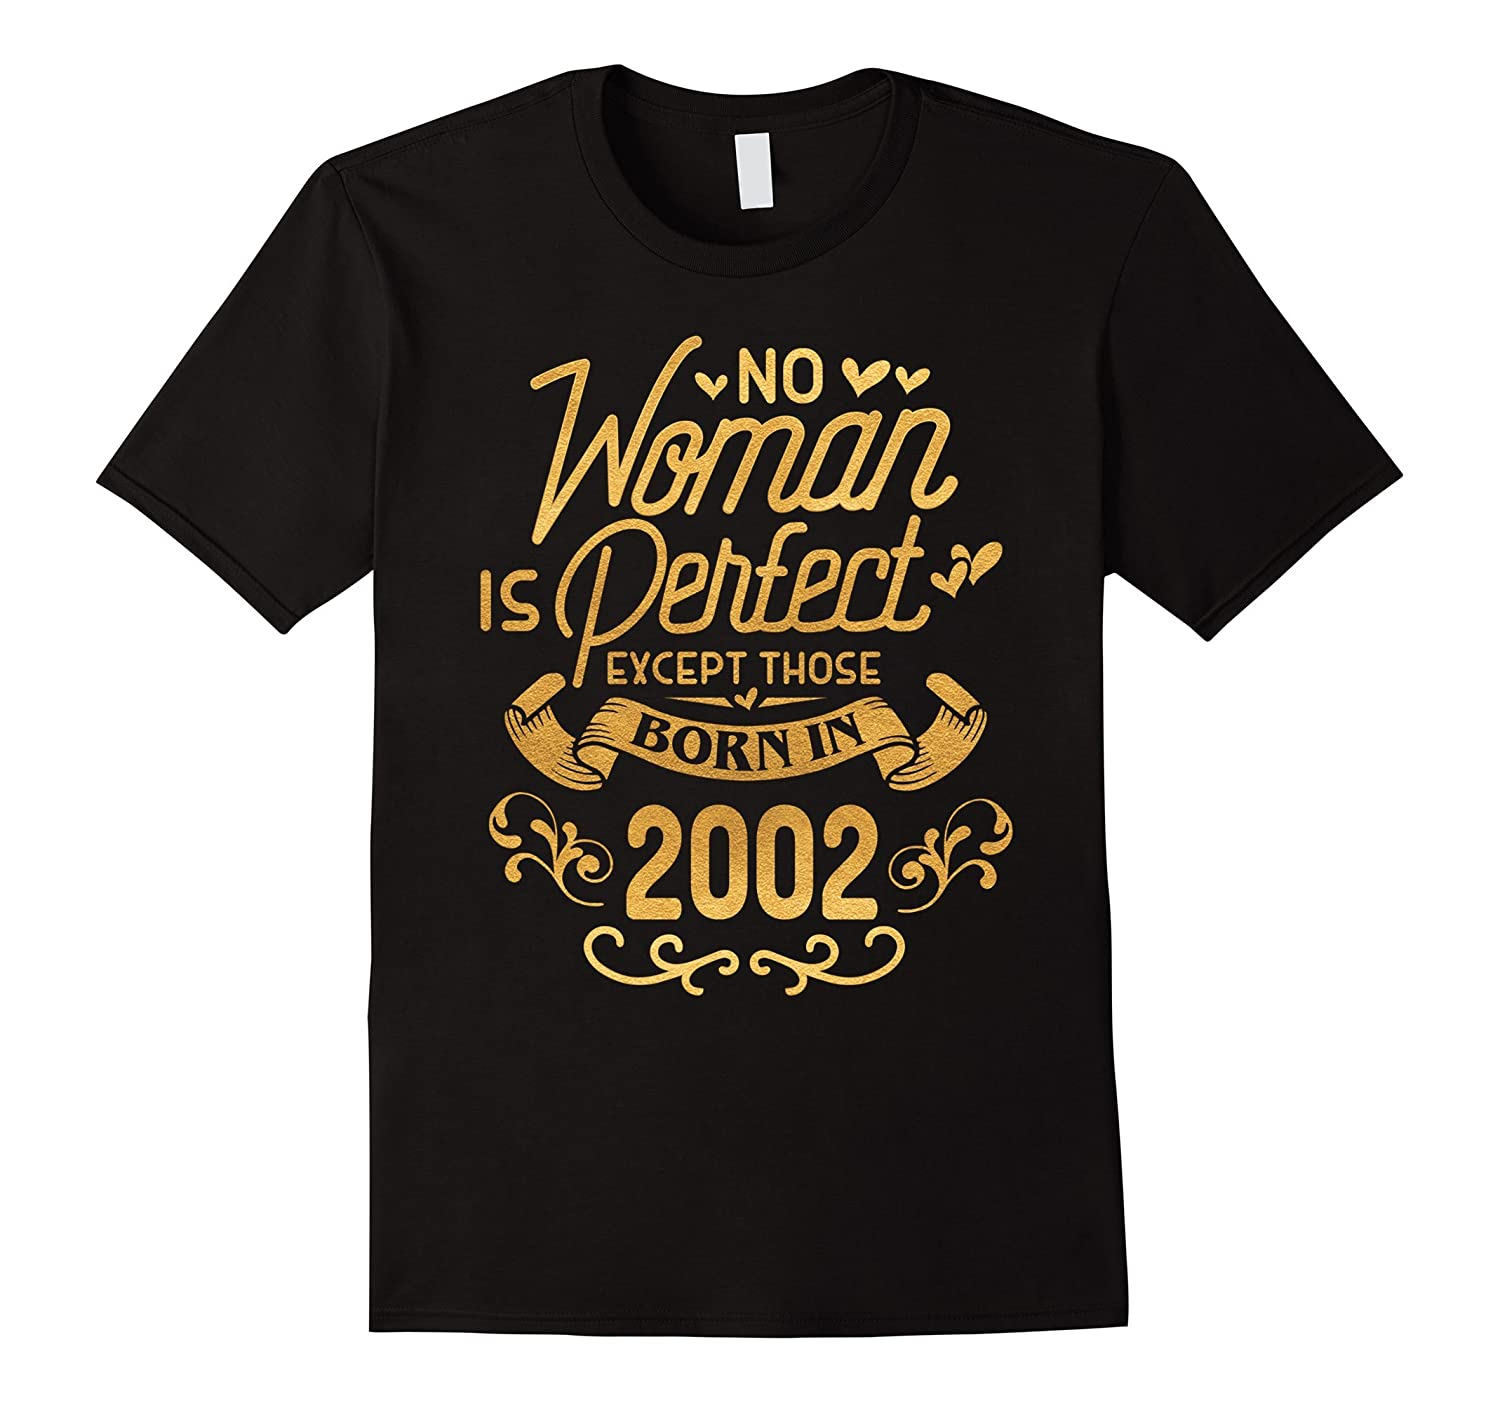 15th Birthday Gift TShirt Woman Is Perfect 2002 15 Year Old-PL